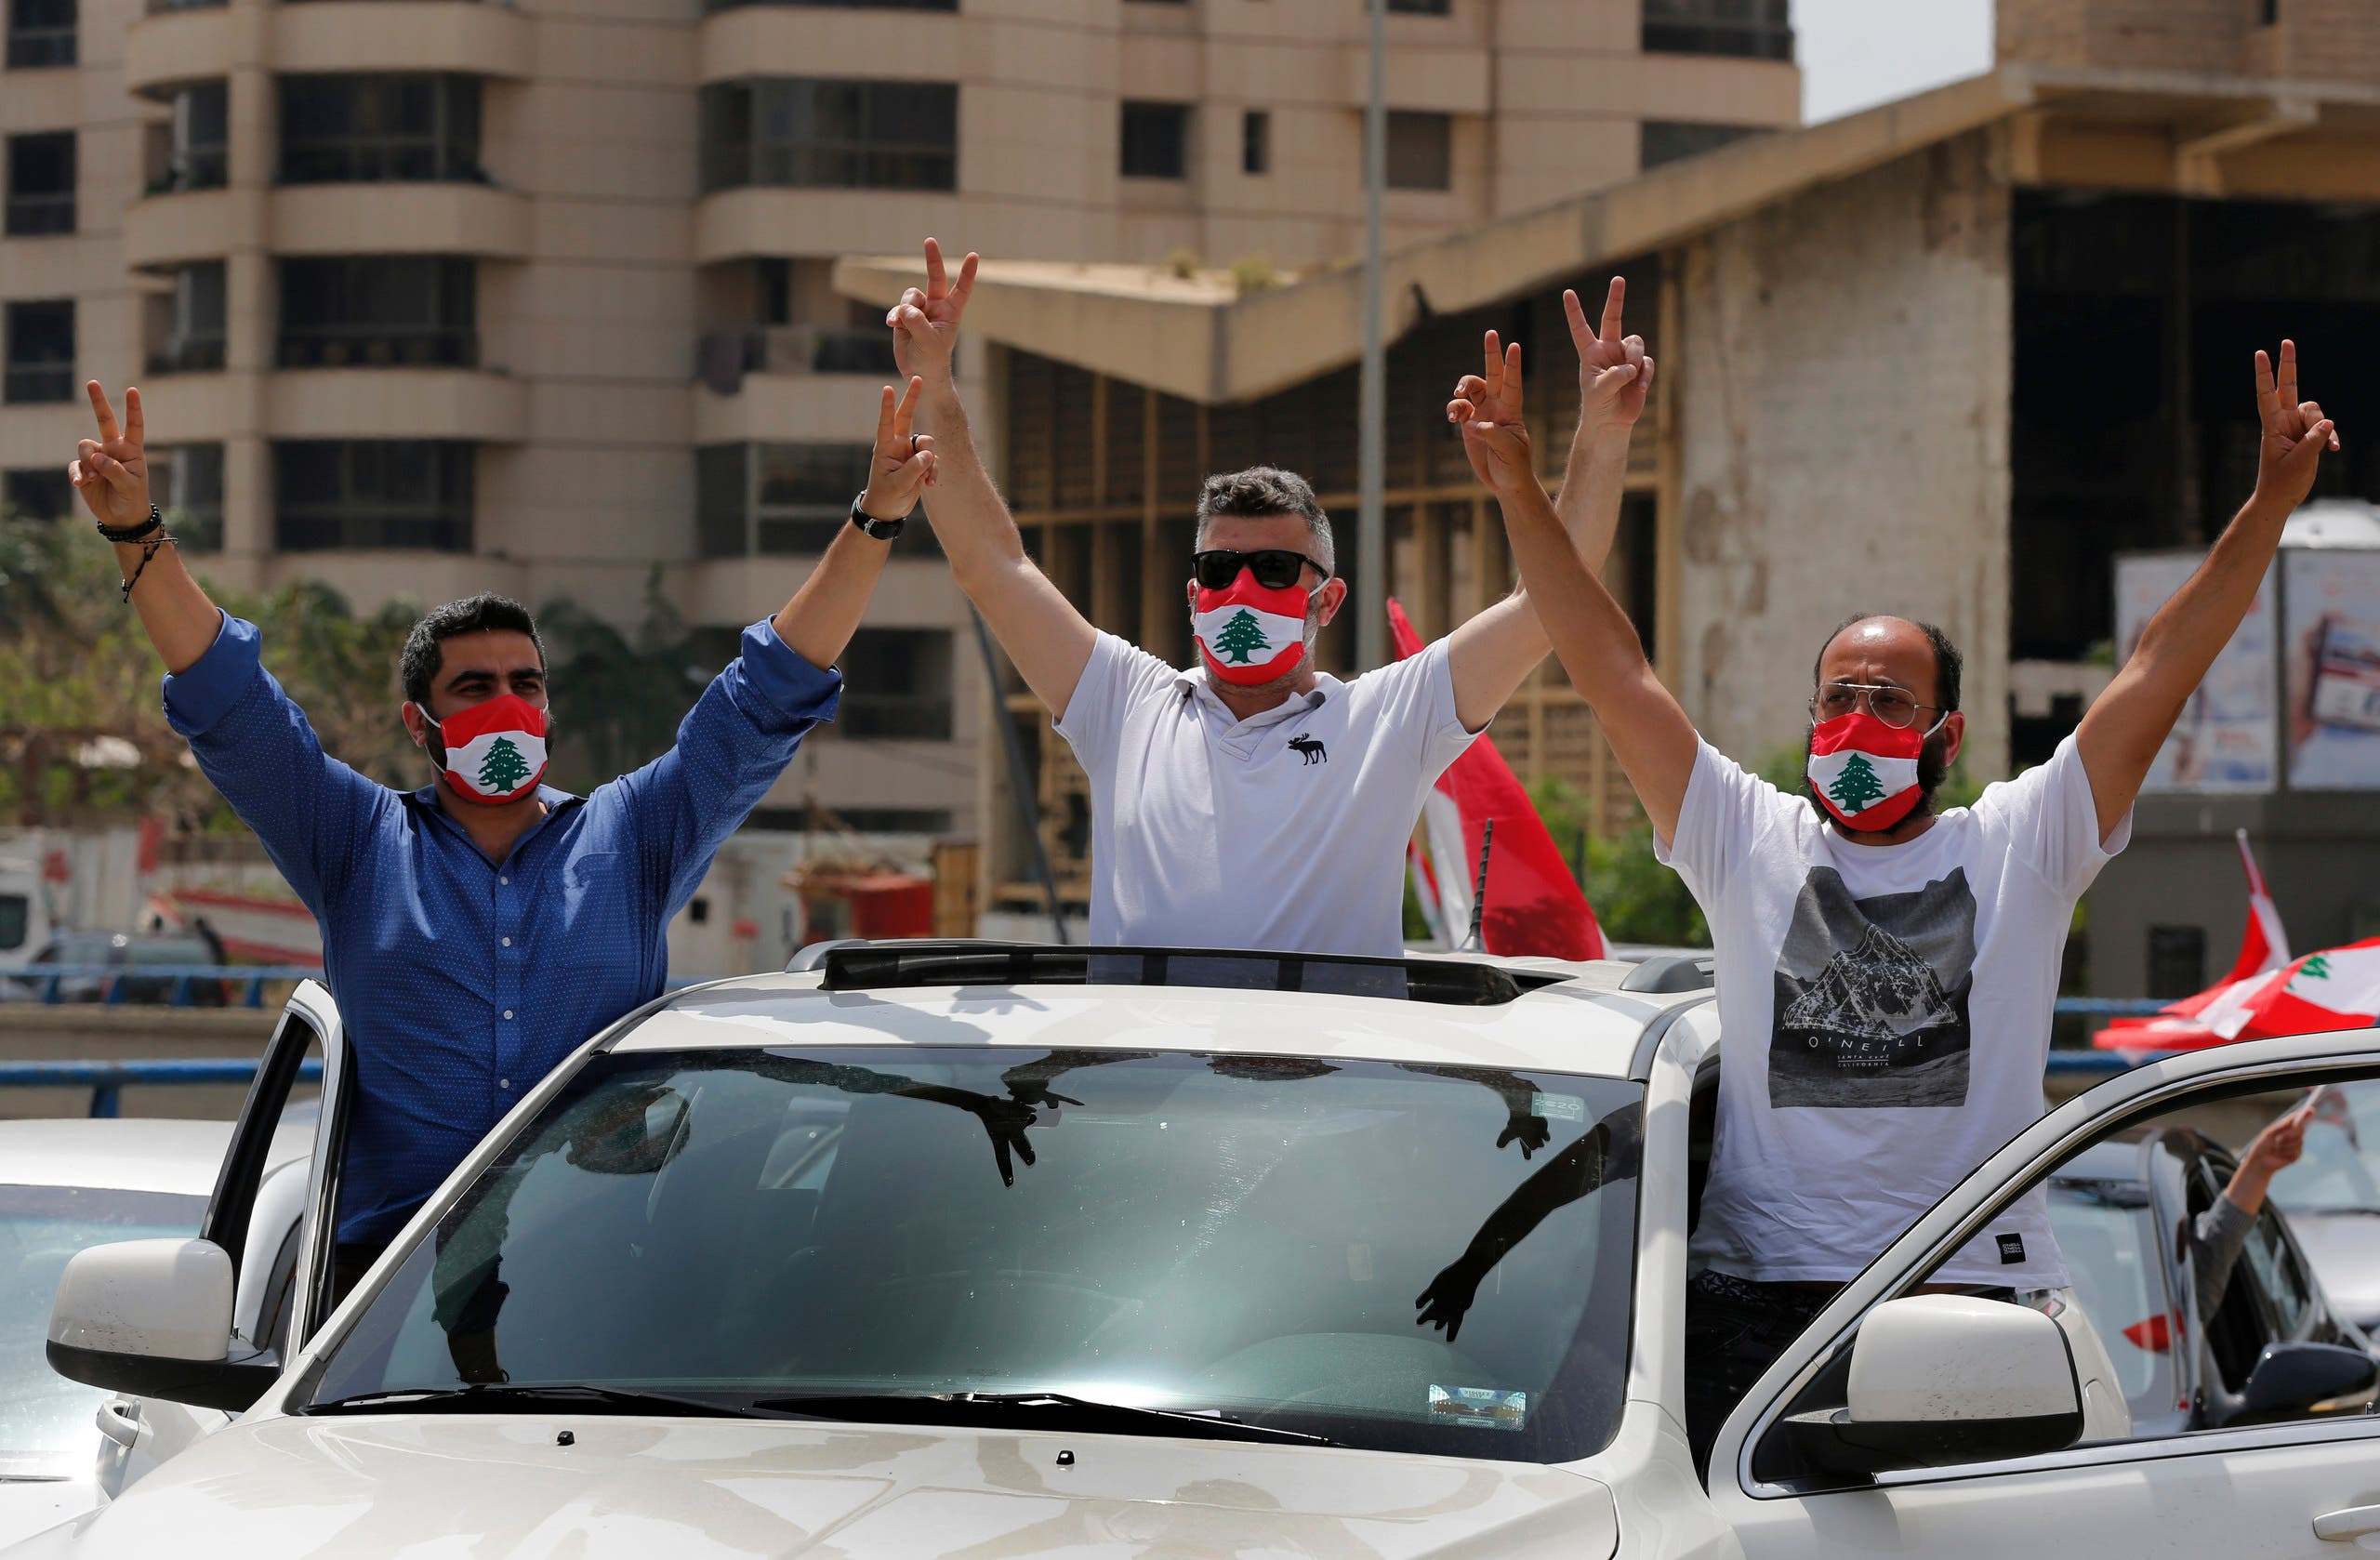 Anti-government protesters flash the victory sign during a driving convoy protest through the streets to express rejection of the political leadership they blame for the economic and financial crisis, in Beirut, Lebanon, on Tuesday, April 21, 2020. (AP)